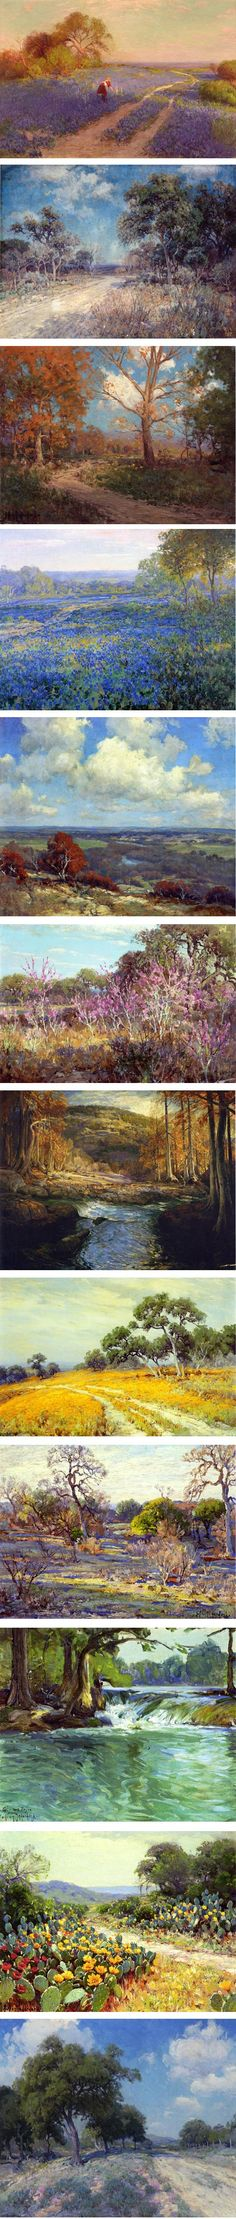 lines and colors :: a blog about drawing, painting, illustration, comics, concept art and other visual arts » Born on this day Robert Julian Onderdonk